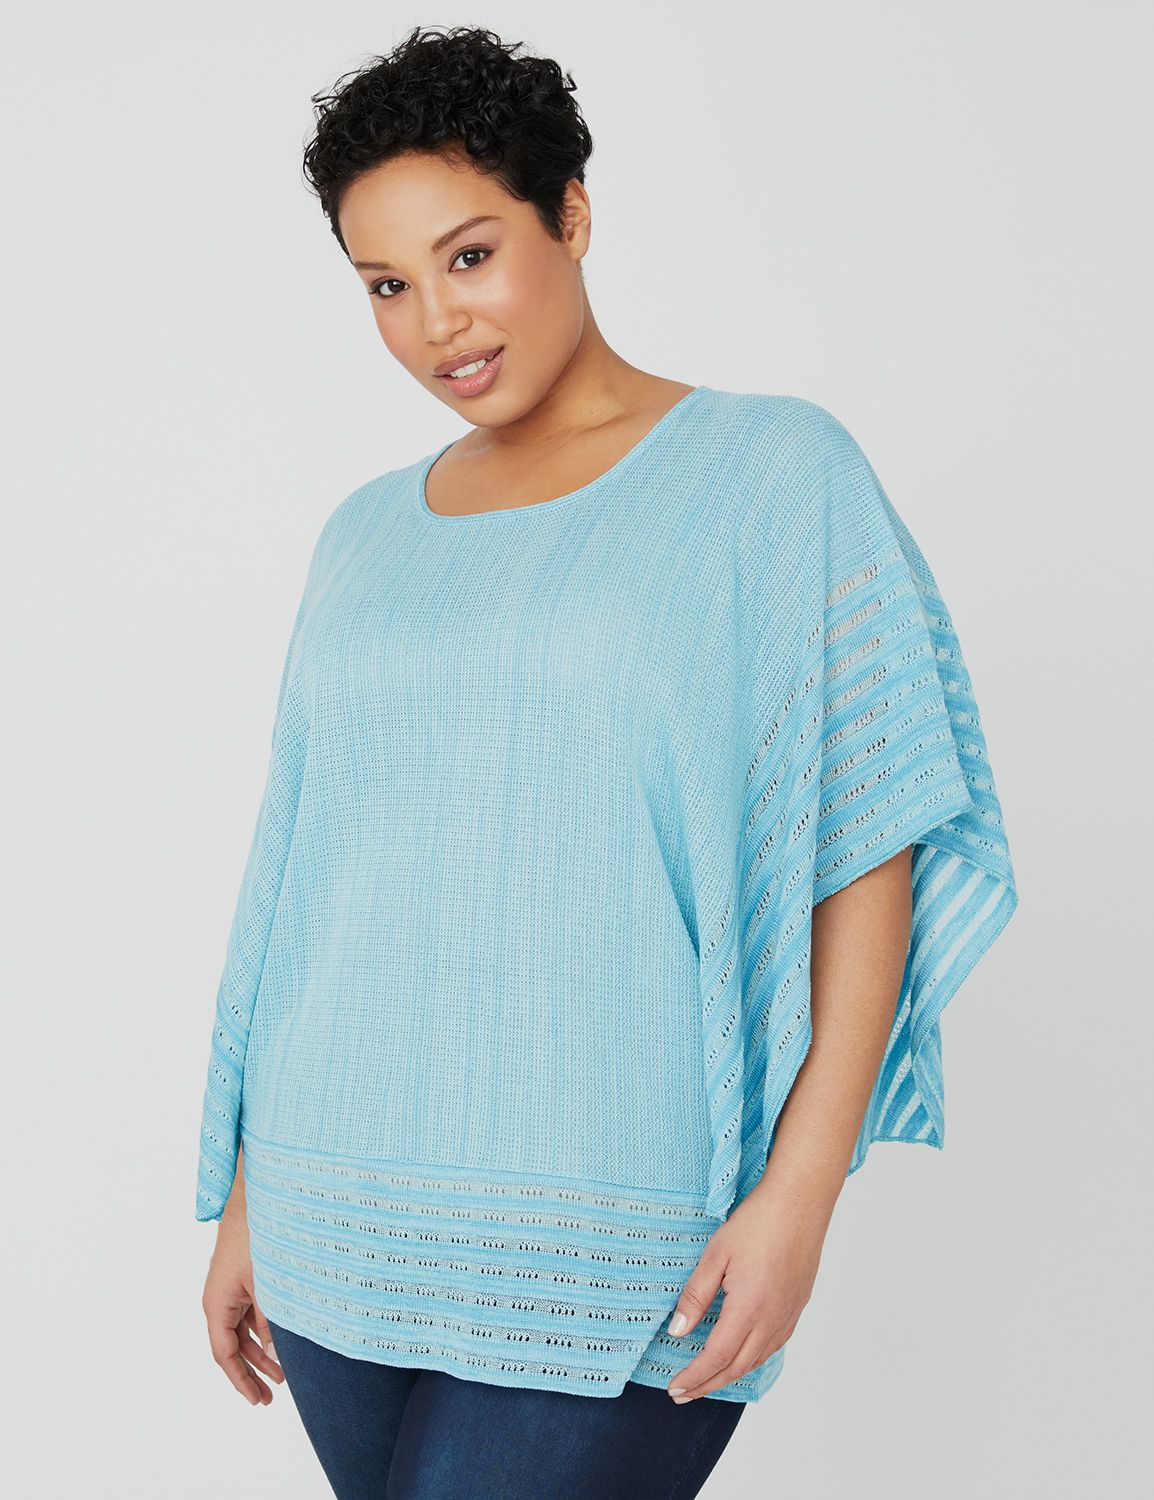 Rippled Edge Sweater 1083897 KimonoPullover 212 MP-300107465